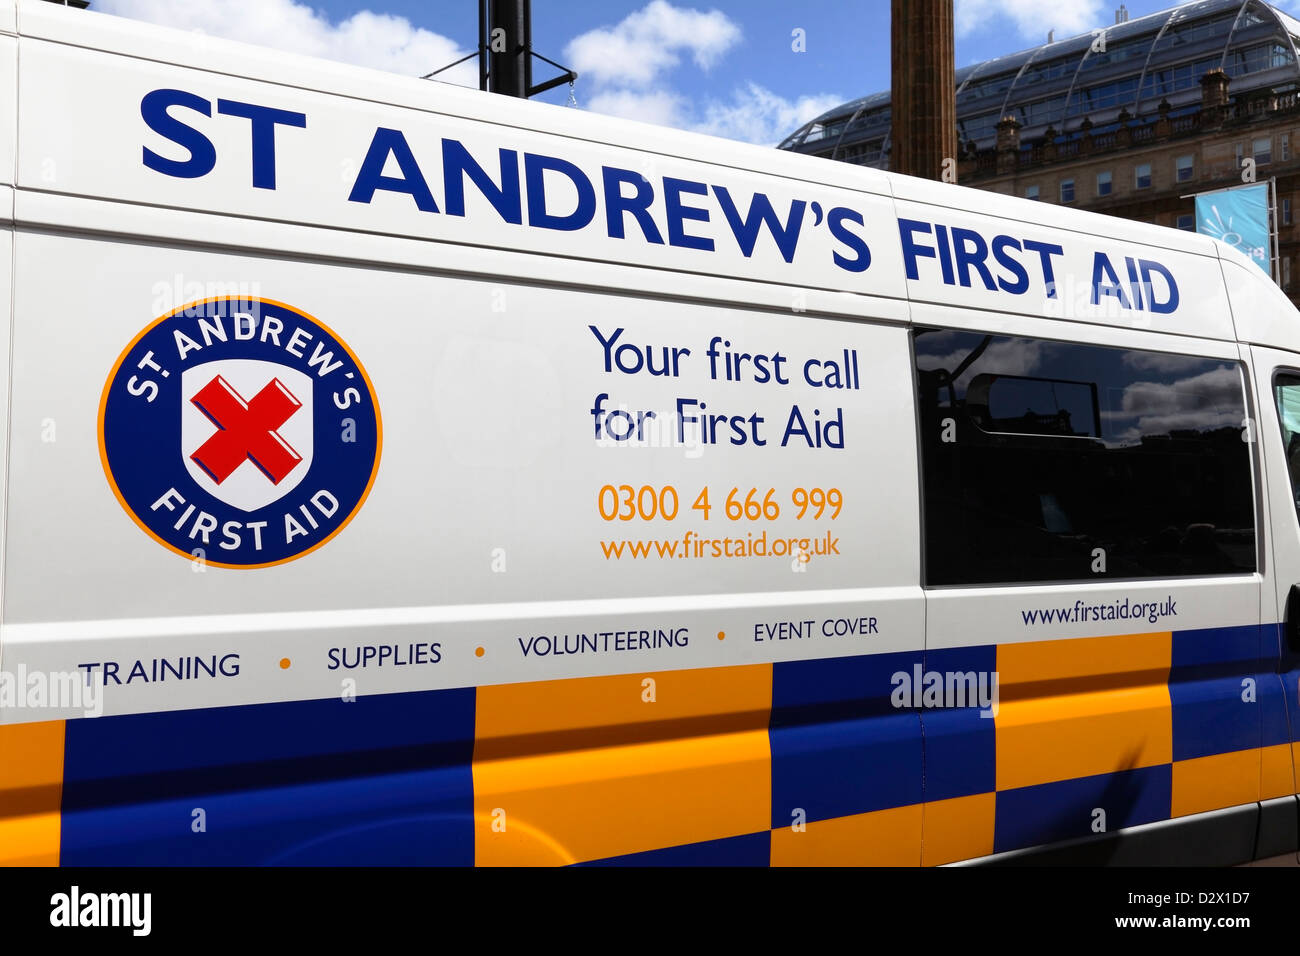 A St Andrew's First Aid van at an event, Scotland, UK - Stock Image